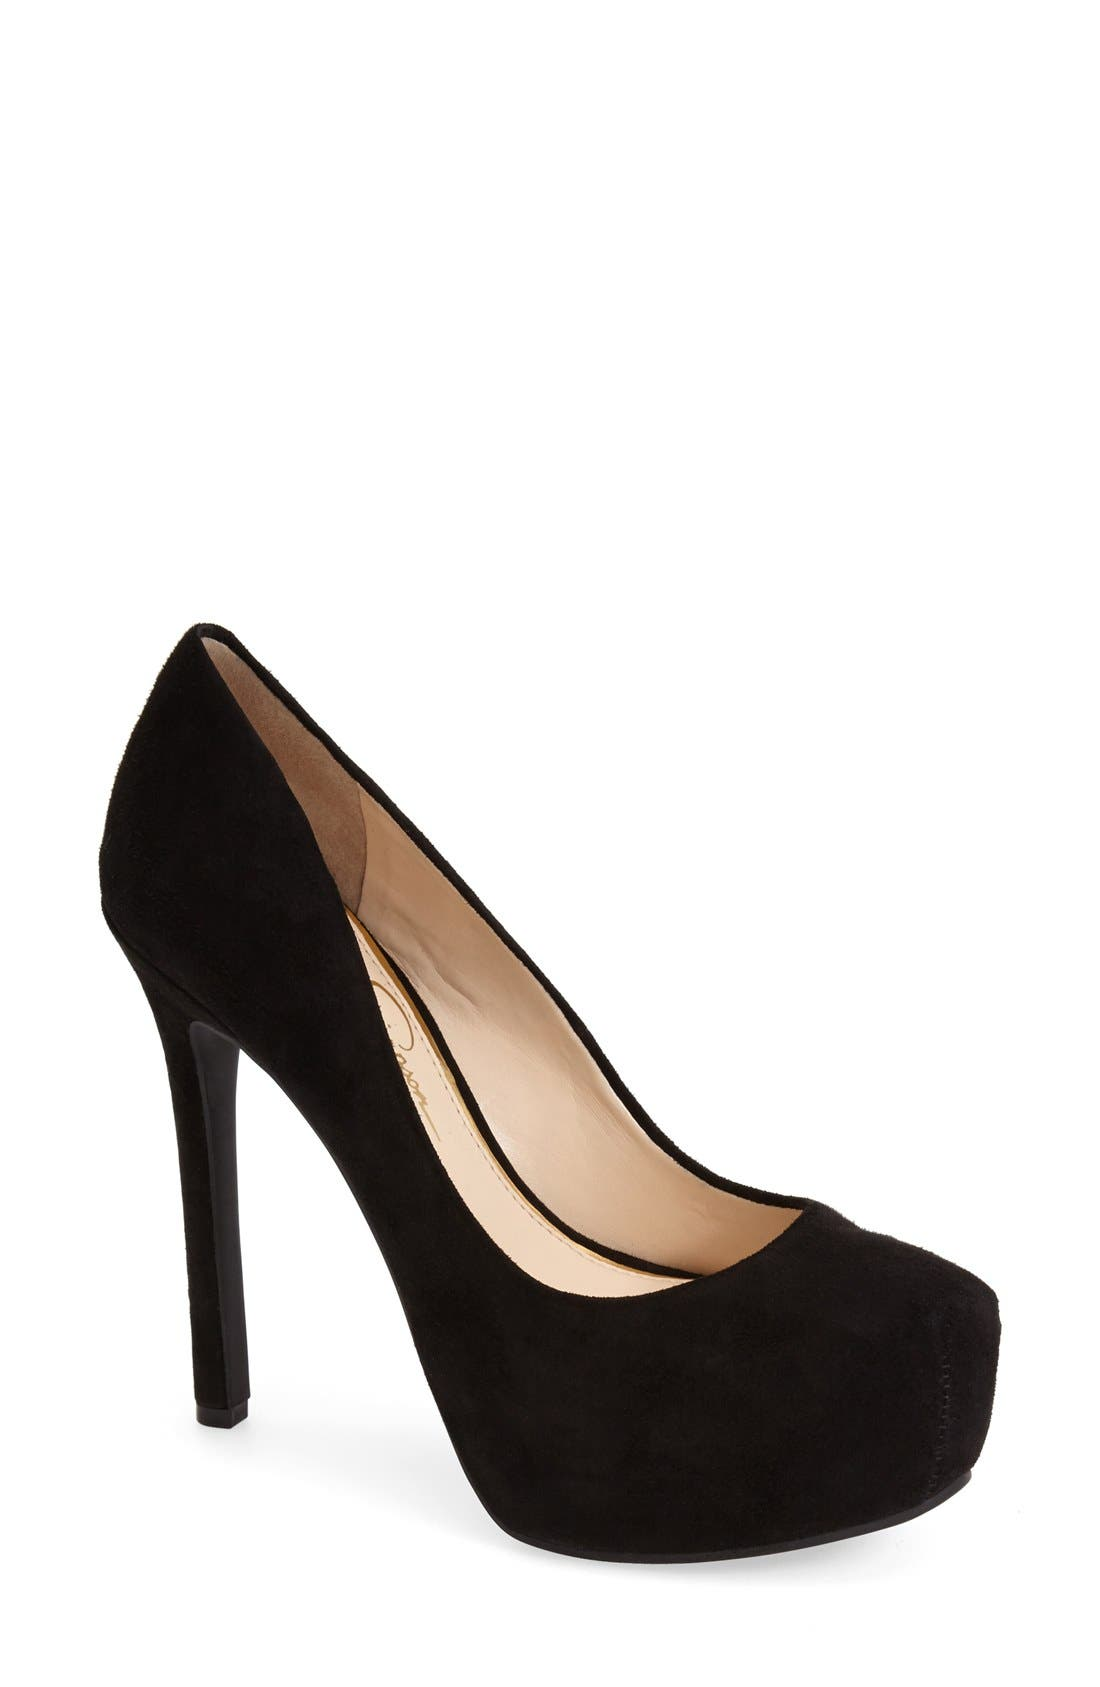 Main Image - Jessica Simpson 'Rebeca' Platform Pump (Women)